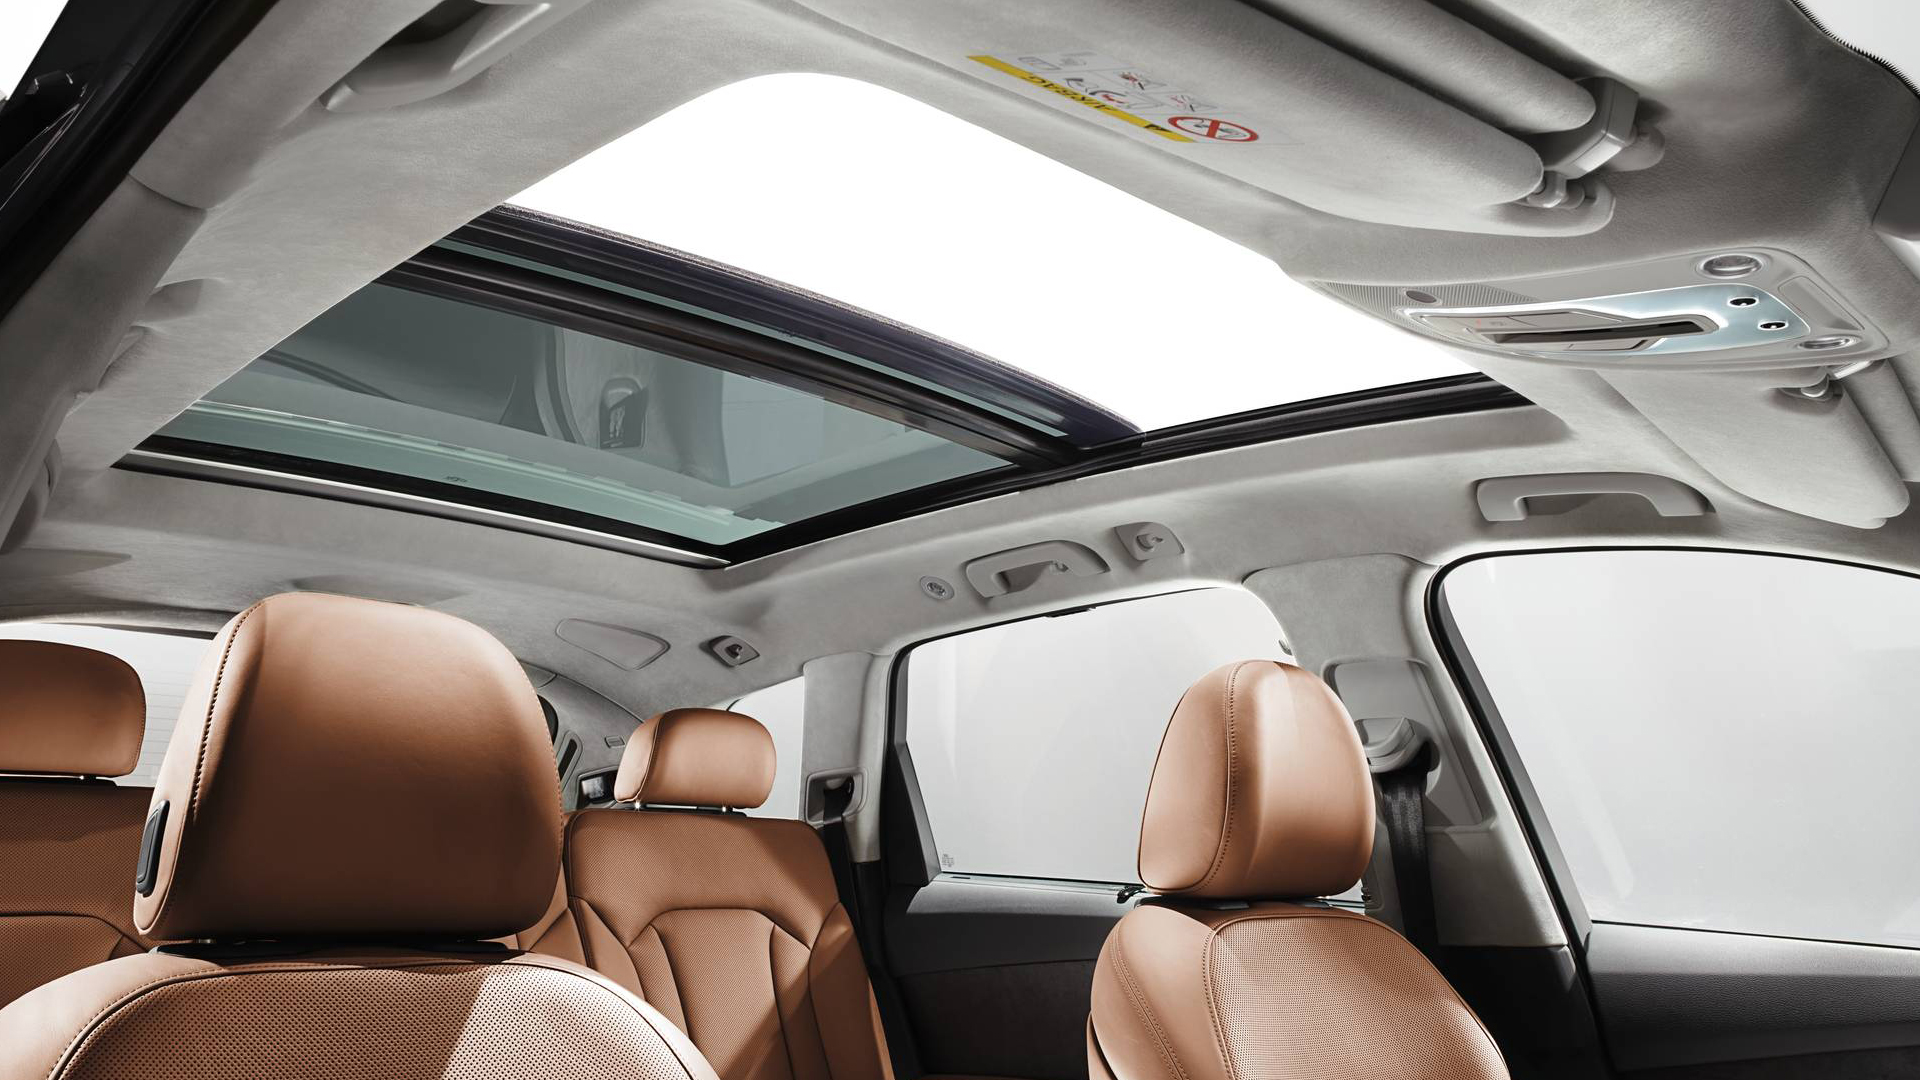 2018 Audi Q7 Panoramic Sunroof